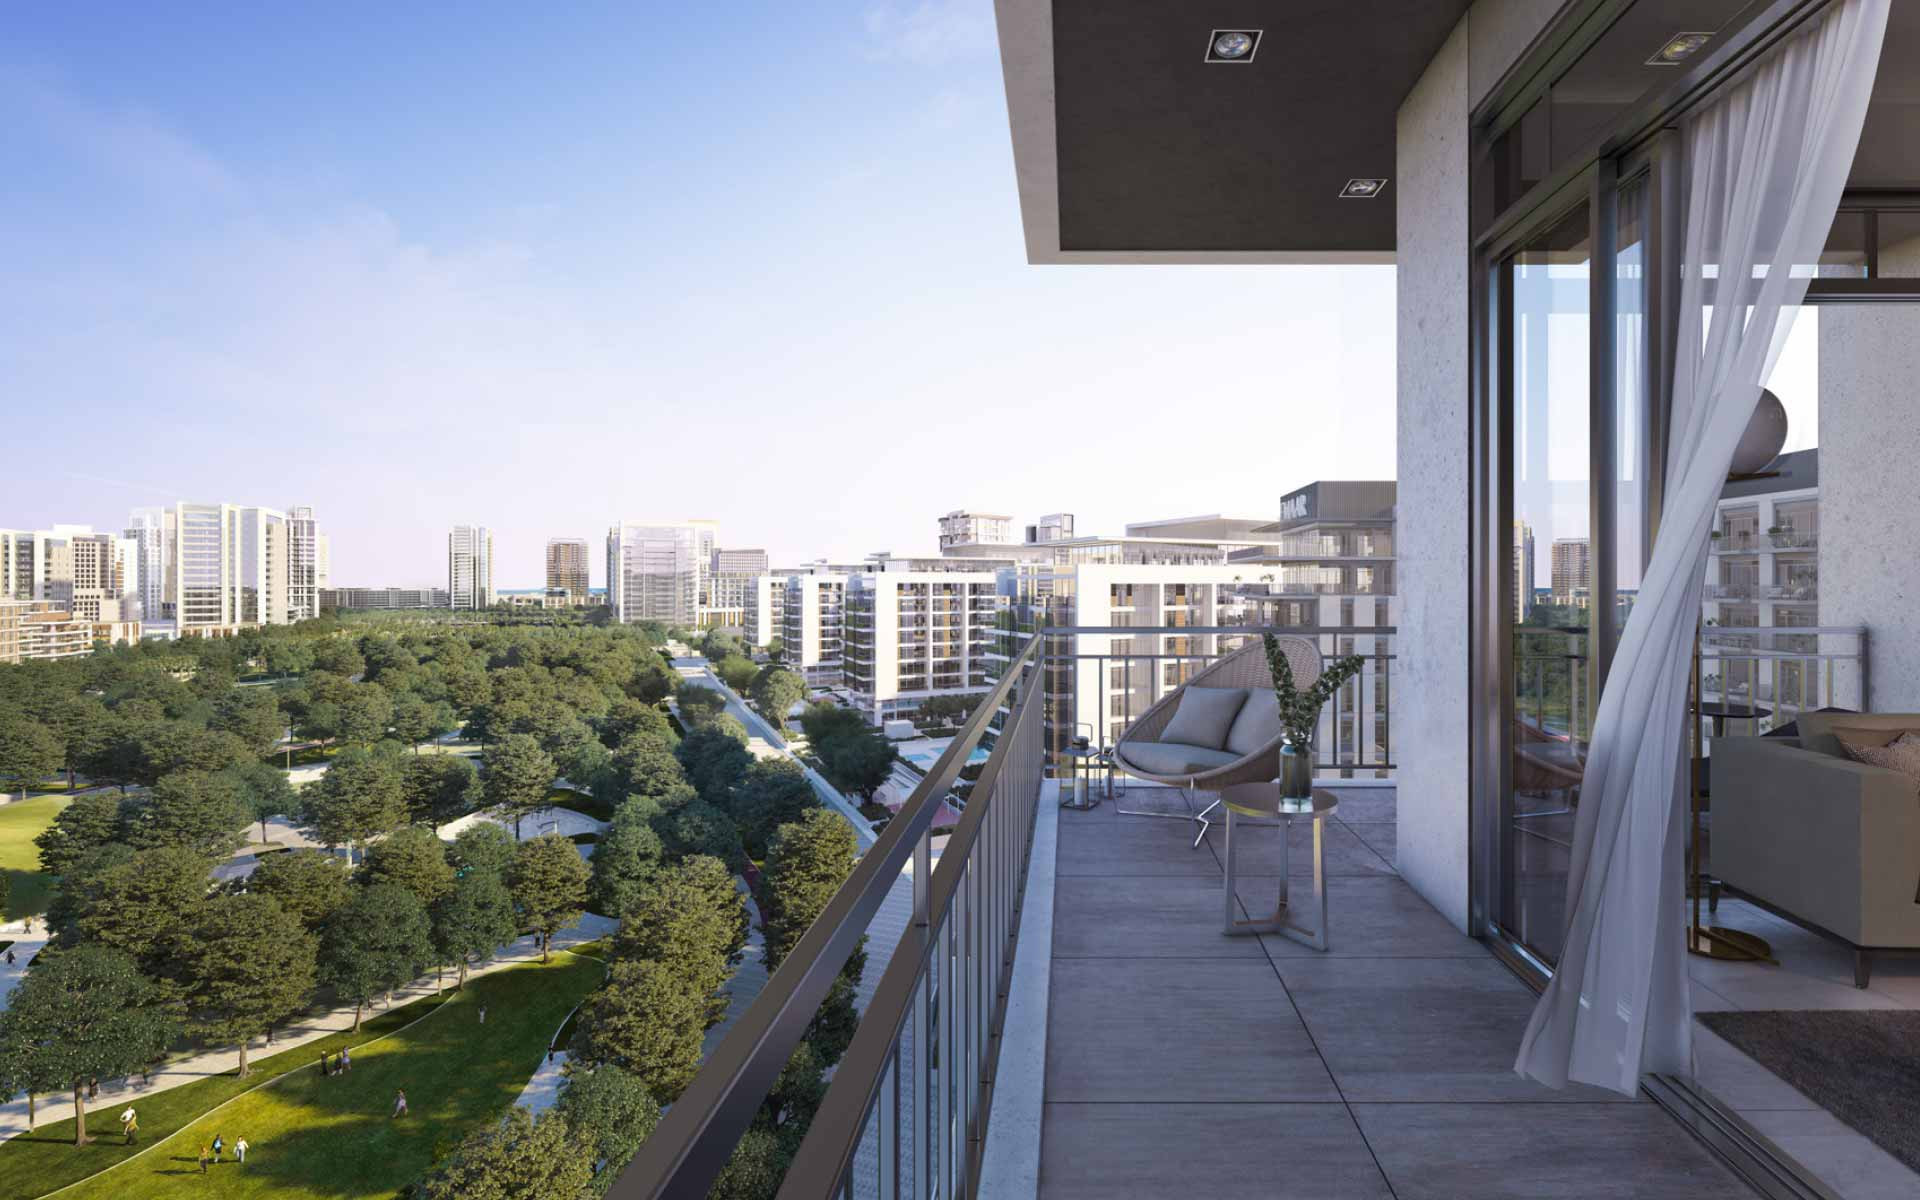 apartment-with-nice-balcony-view-in-executive-residences